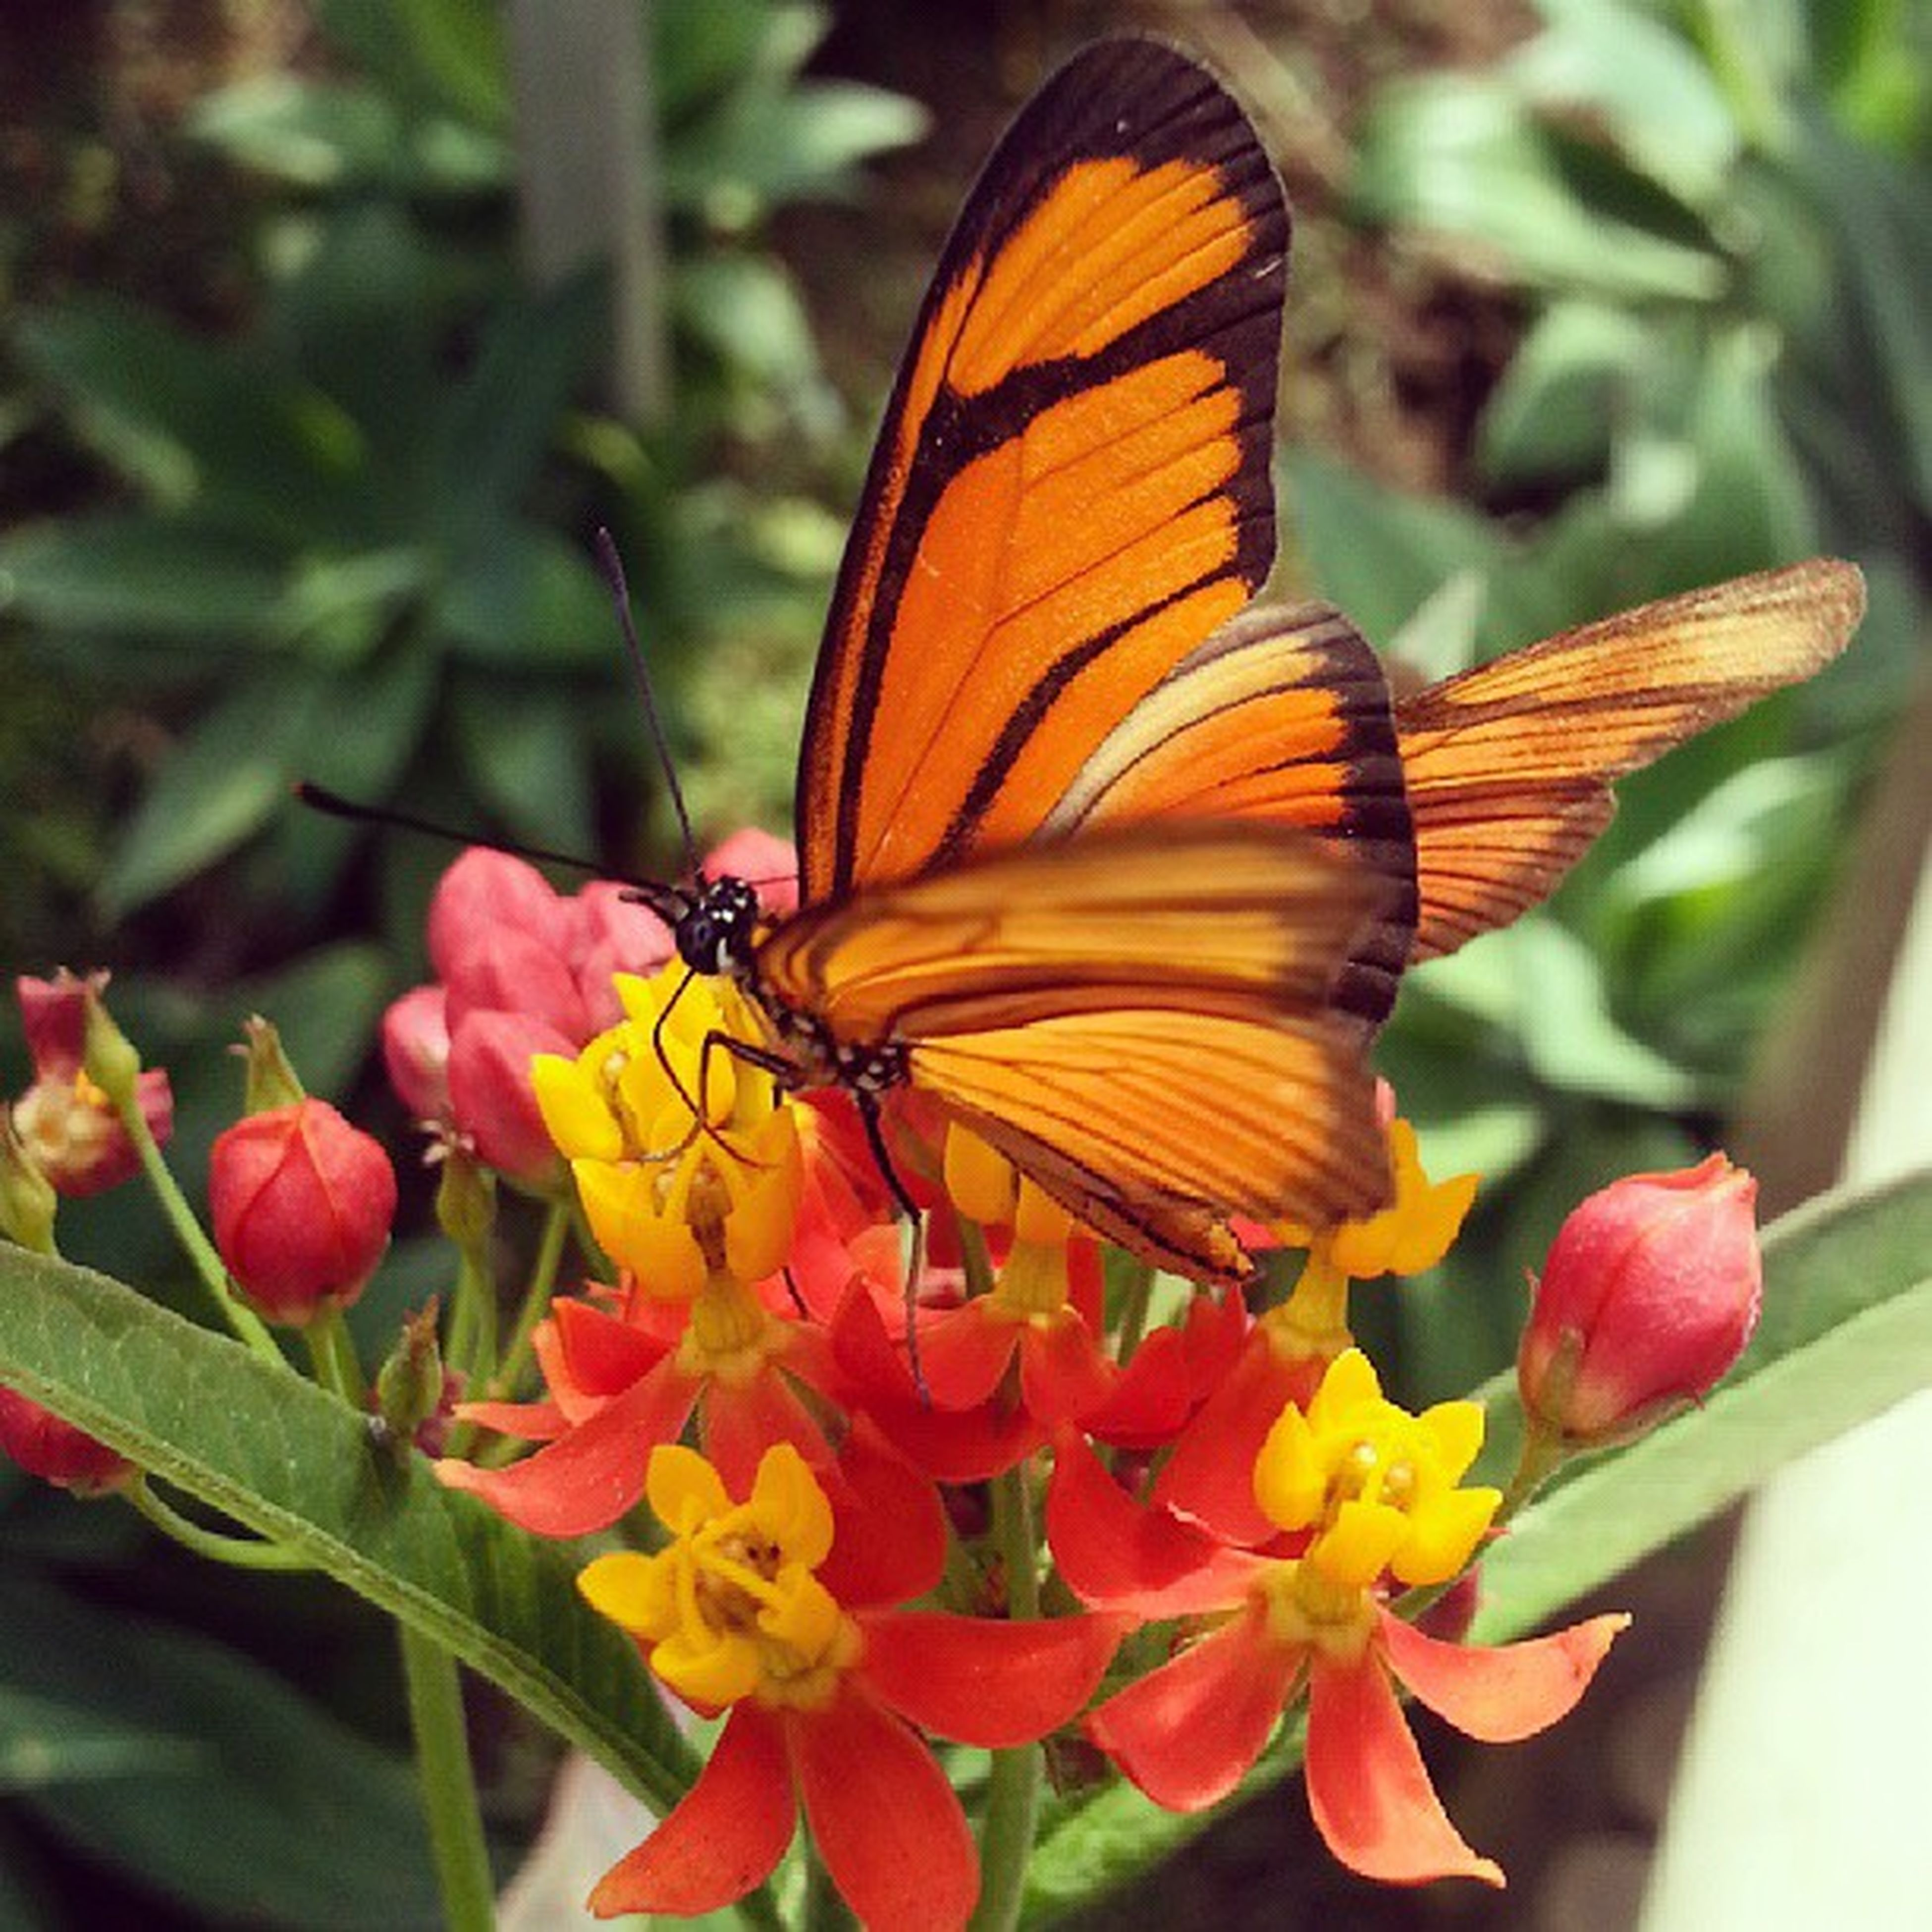 flower, insect, one animal, animal themes, animals in the wild, butterfly - insect, wildlife, petal, fragility, freshness, butterfly, pollination, beauty in nature, close-up, flower head, orange color, growth, focus on foreground, plant, nature